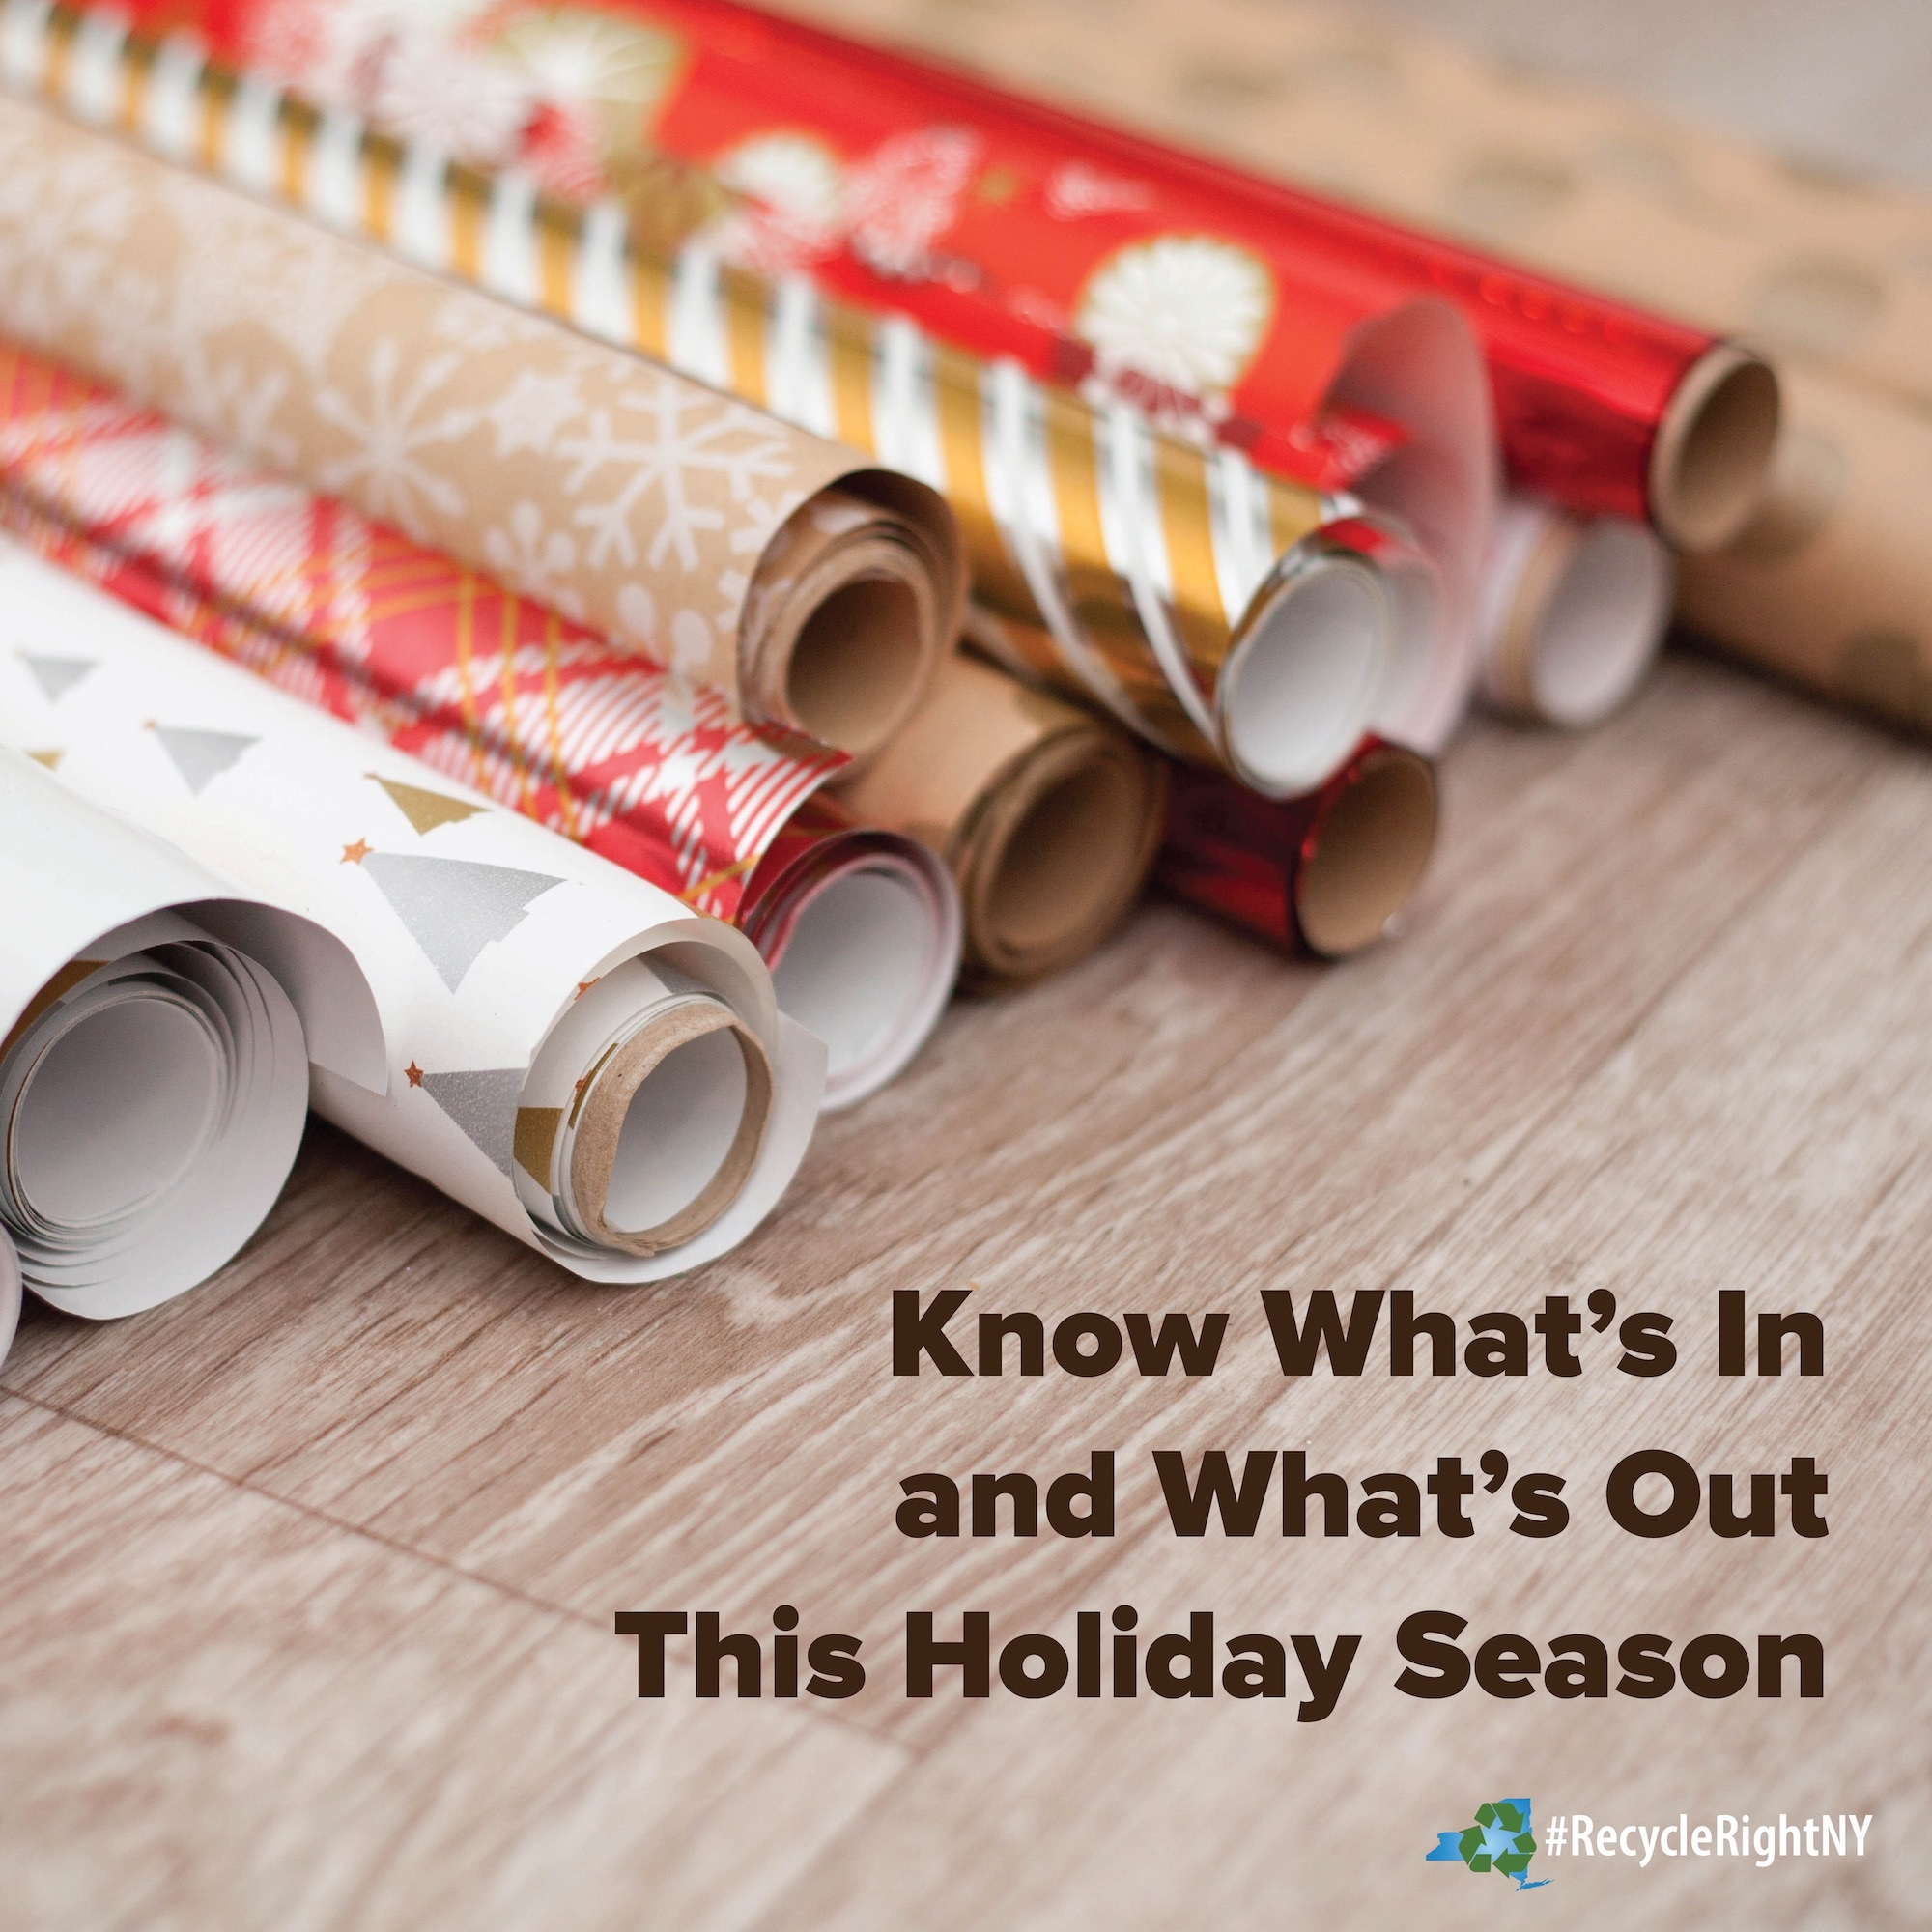 different types of wrapping paper suggesting make sure you know which types  can be put in your recycling bin and which ones cannot